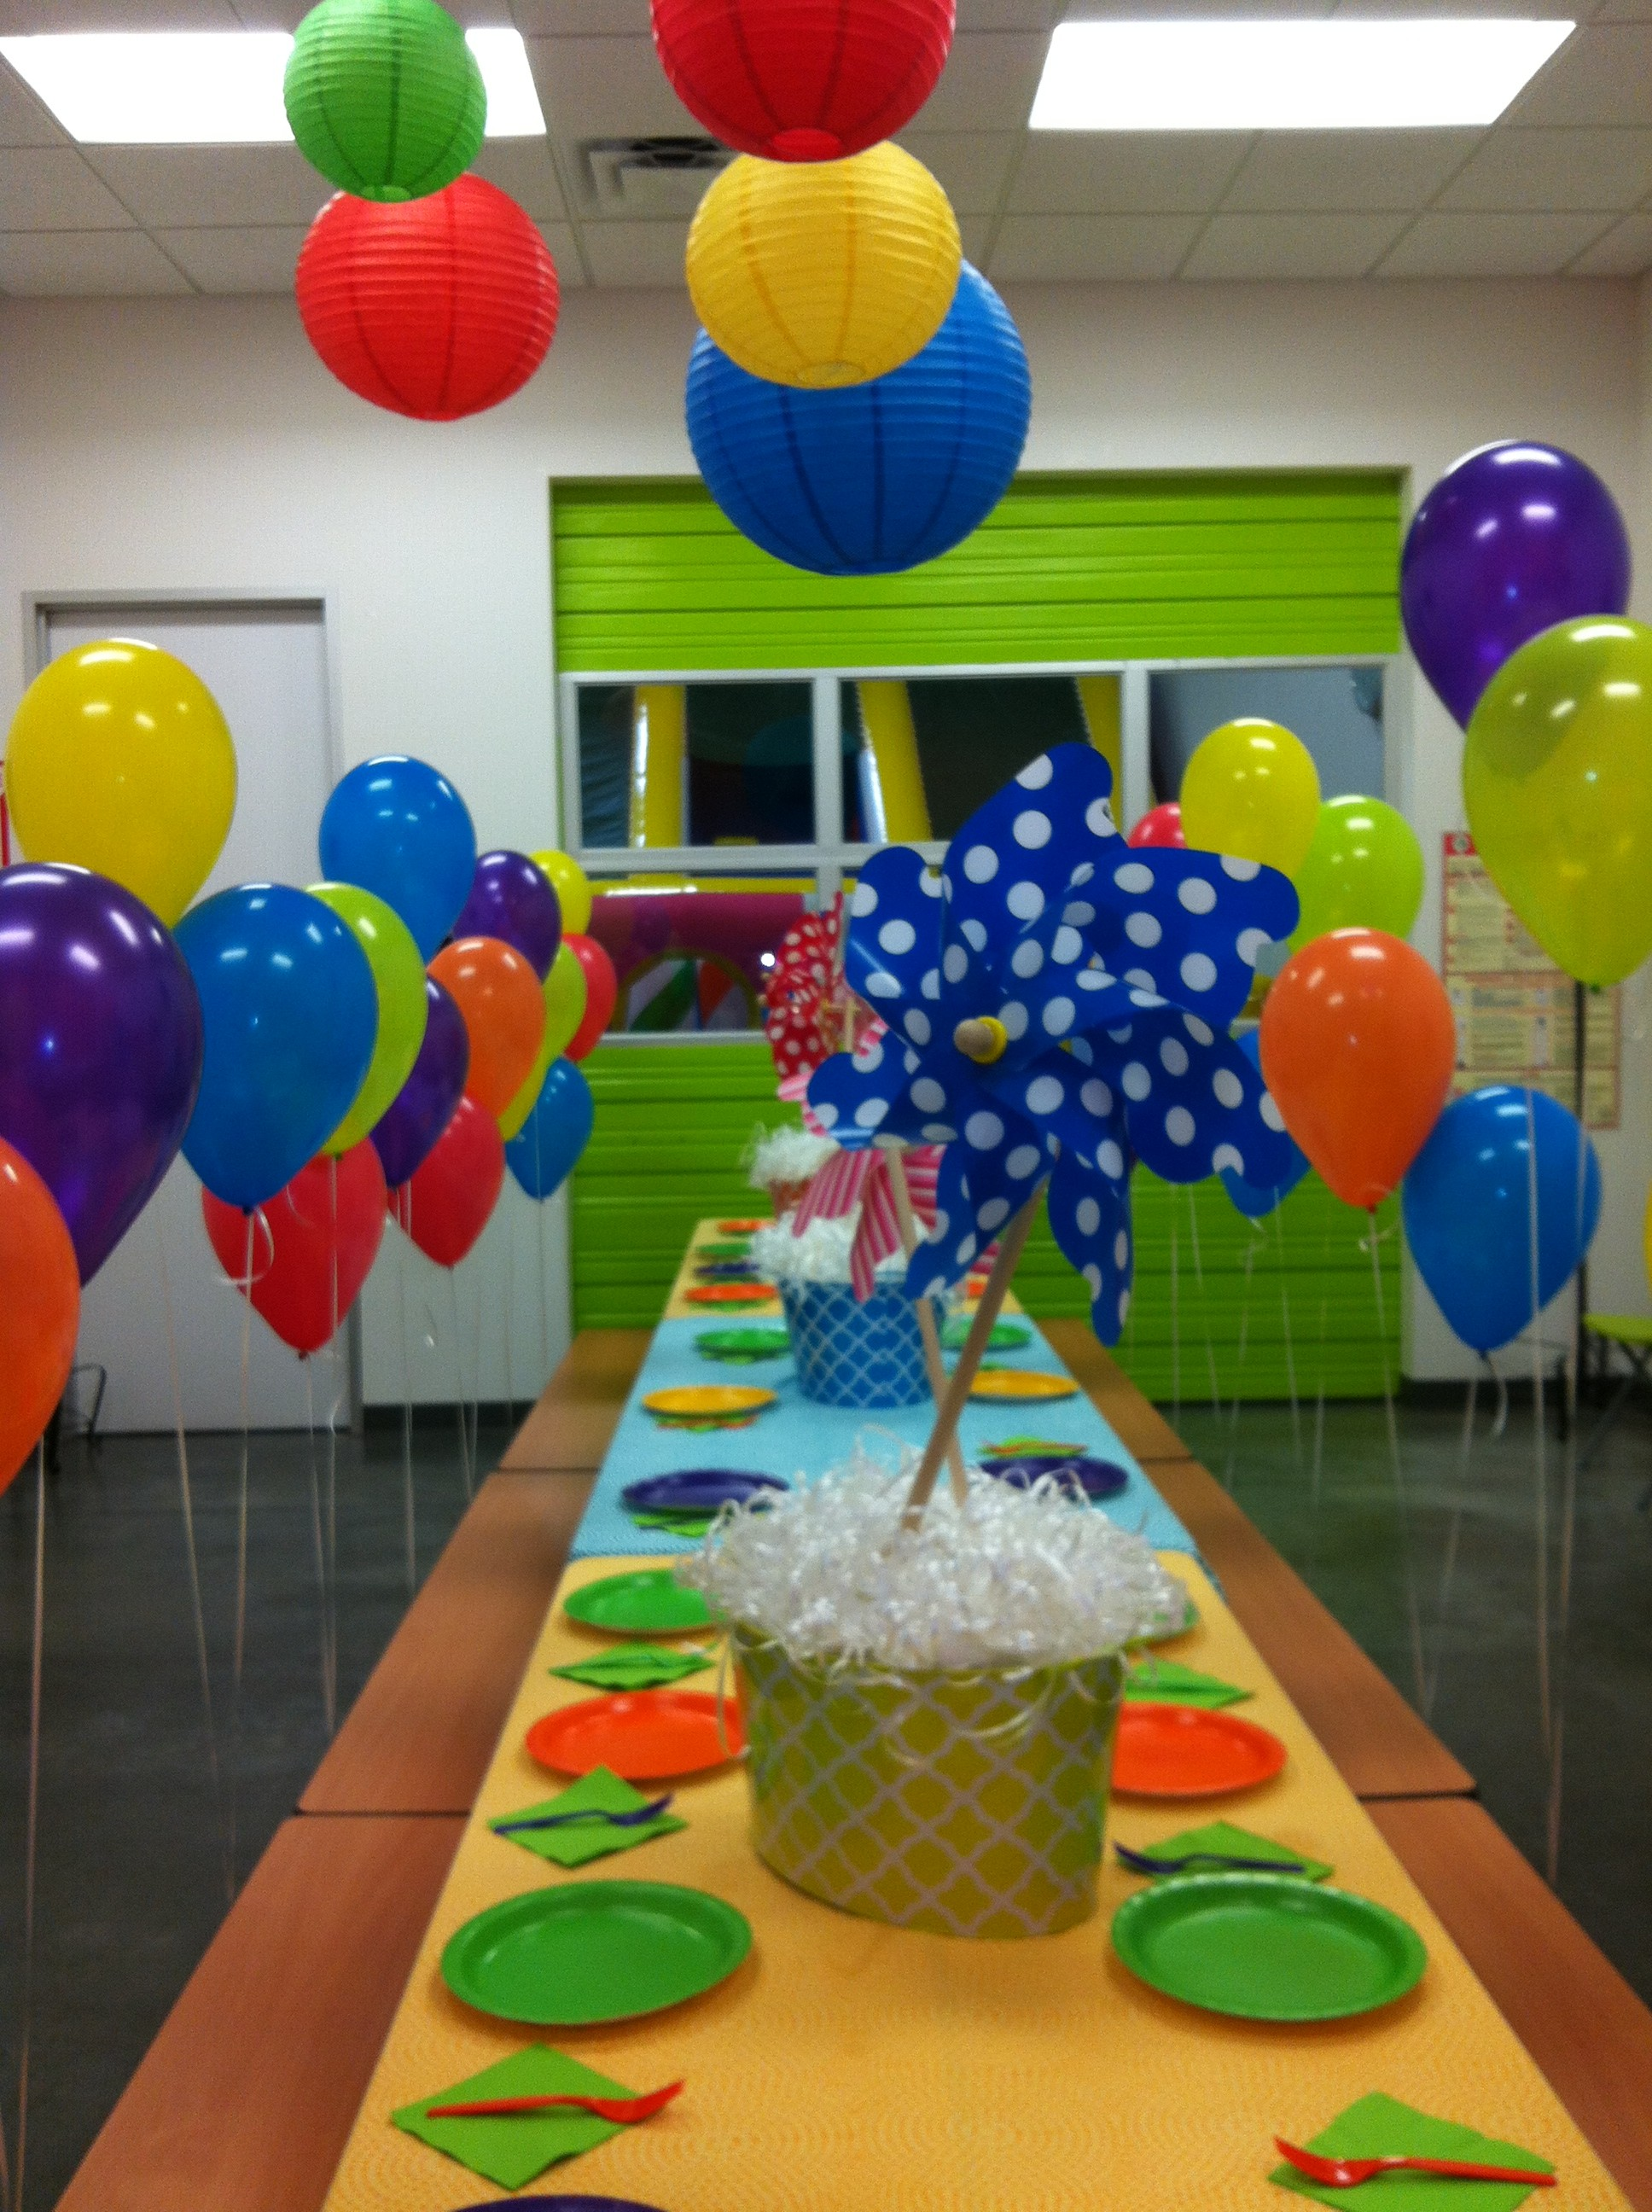 Colorful Party Decorations Your Party Decorations For